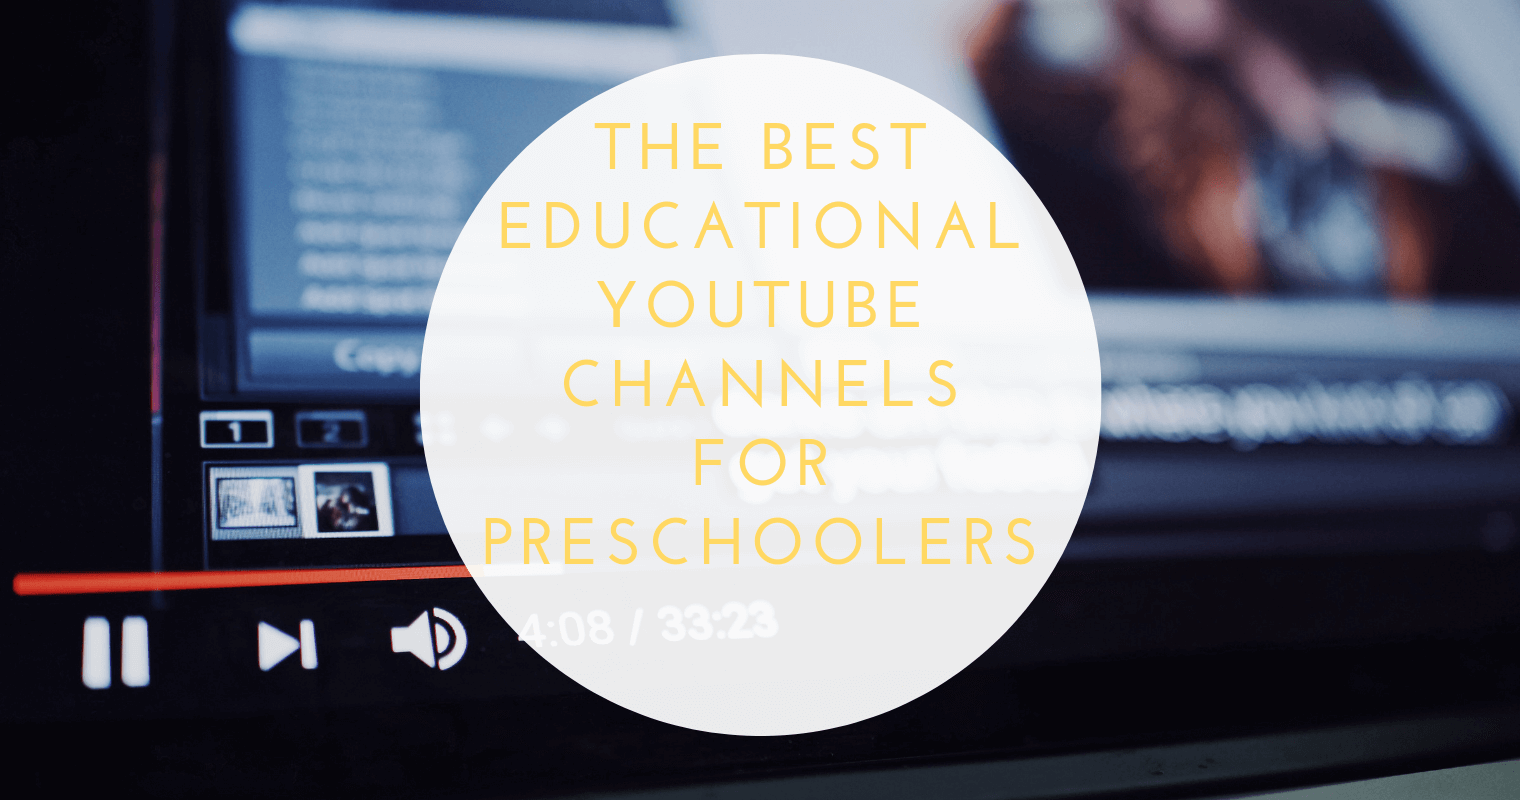 Need a quick go-to list of clean, educational YouTube channels for your preschooler? Look no further!